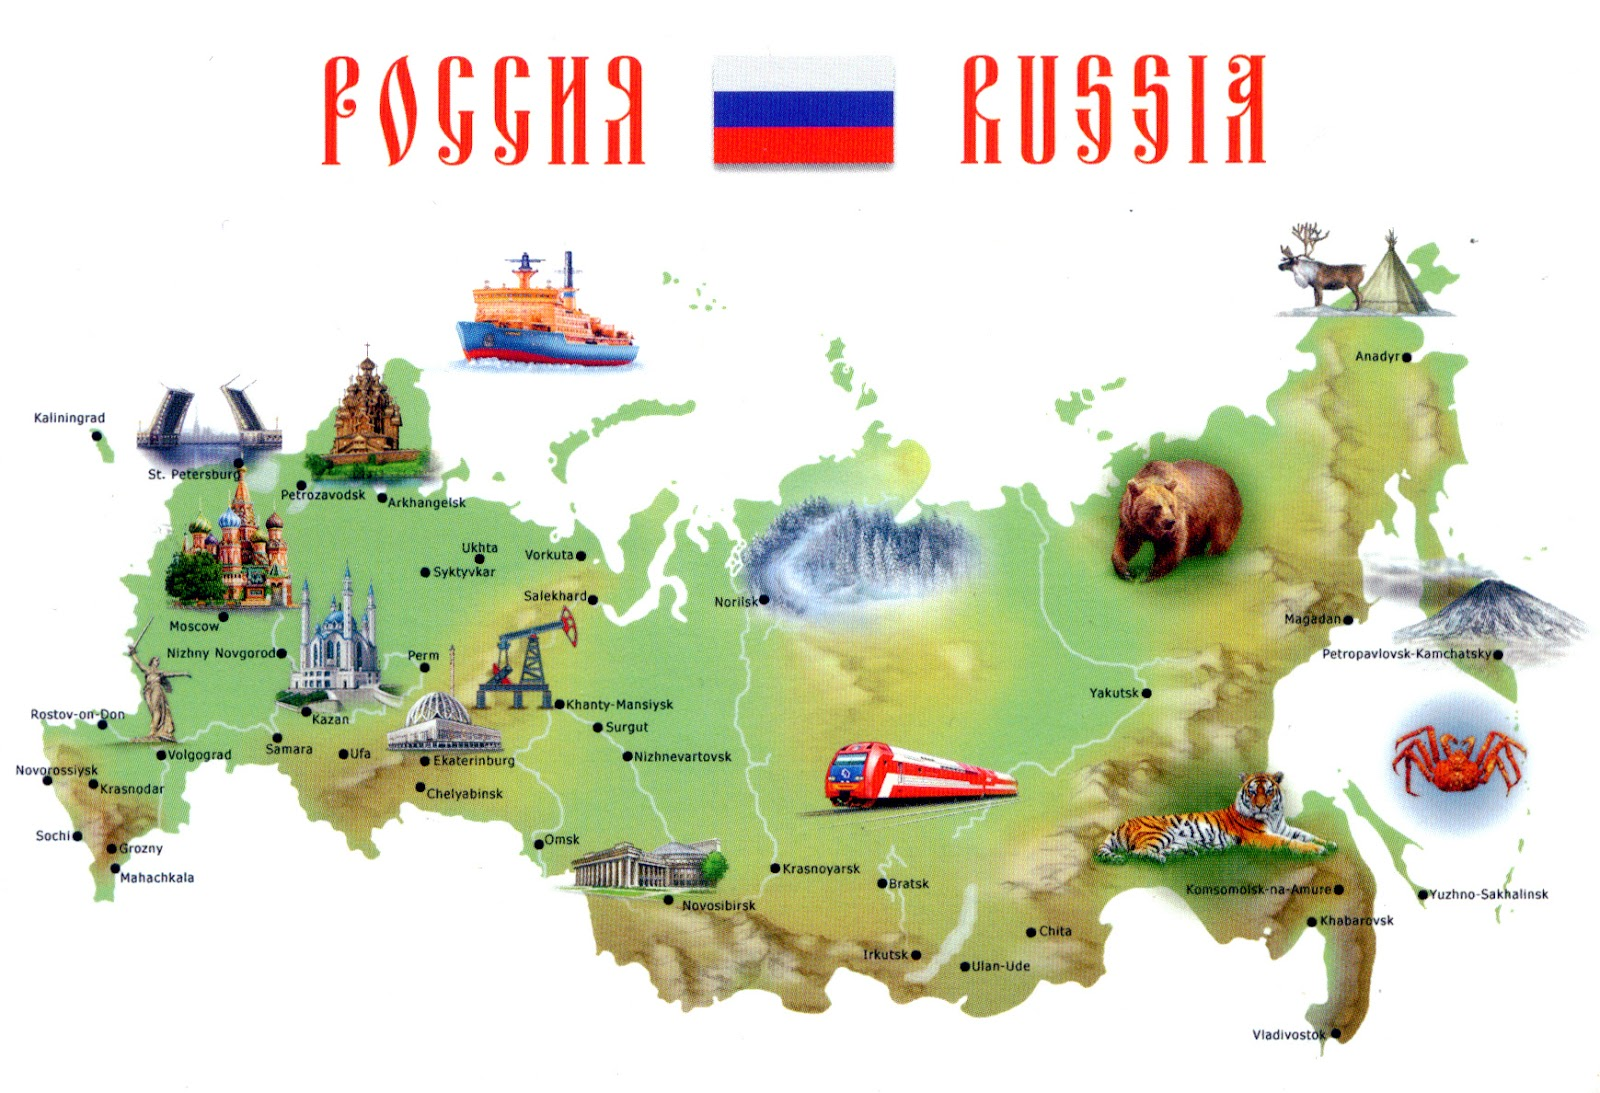 WORLD COME TO MY HOME 0191 2975 RUSSIA  The map and the flag